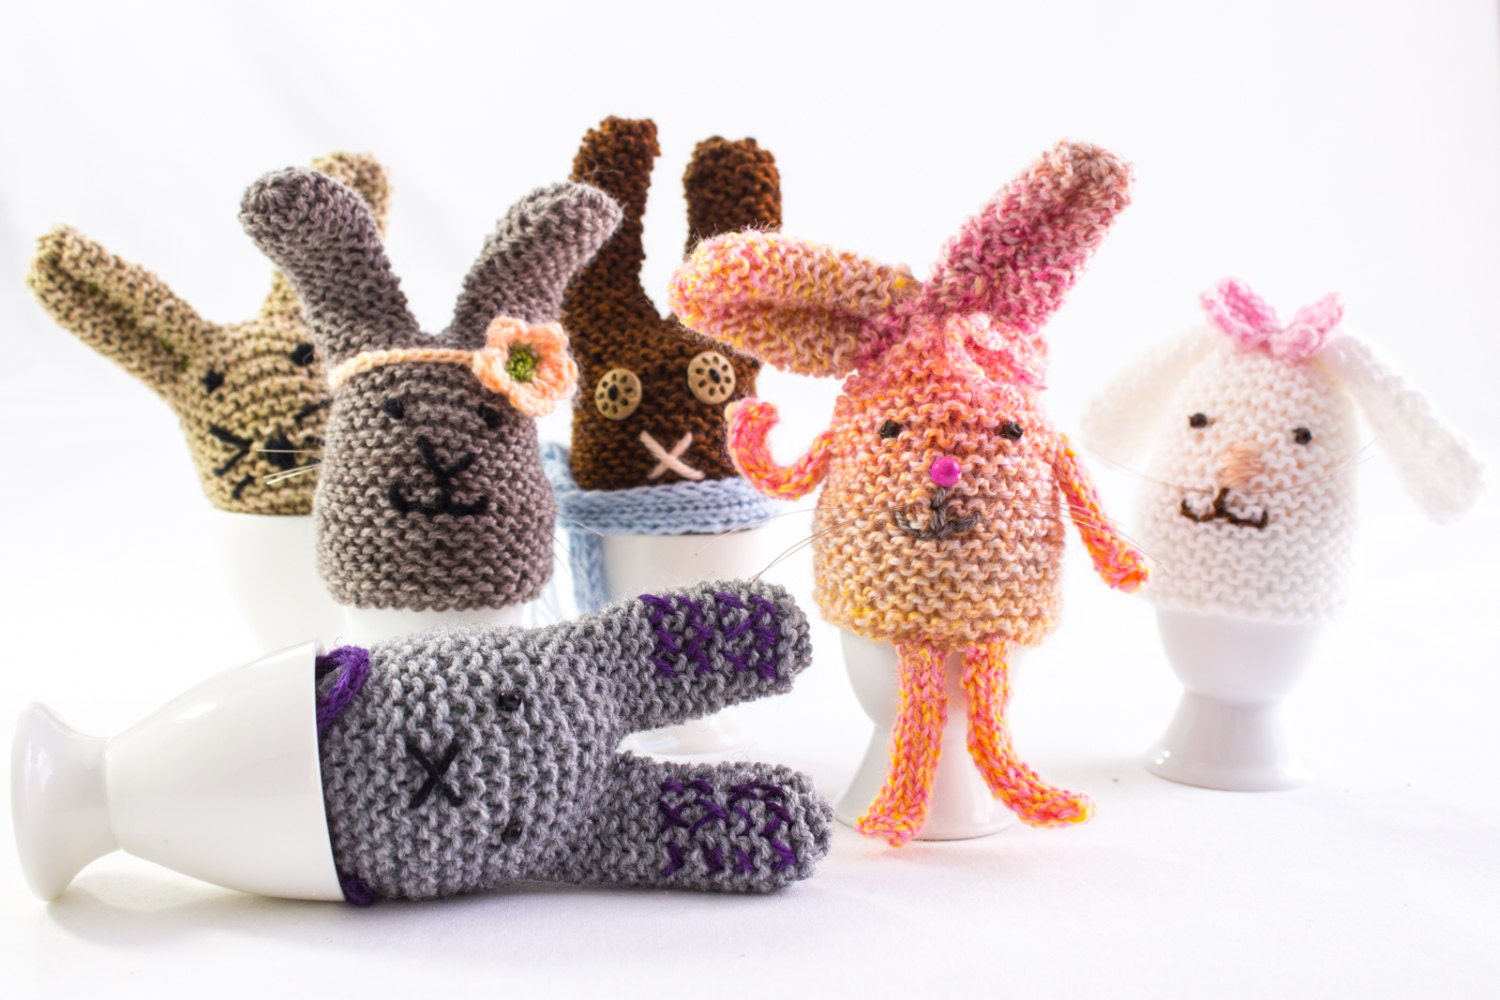 Easter Egg Cosy Knitting Pattern : KNITTING PATTERN Egg Cosy Knitted Easter Egg Cosies Egg